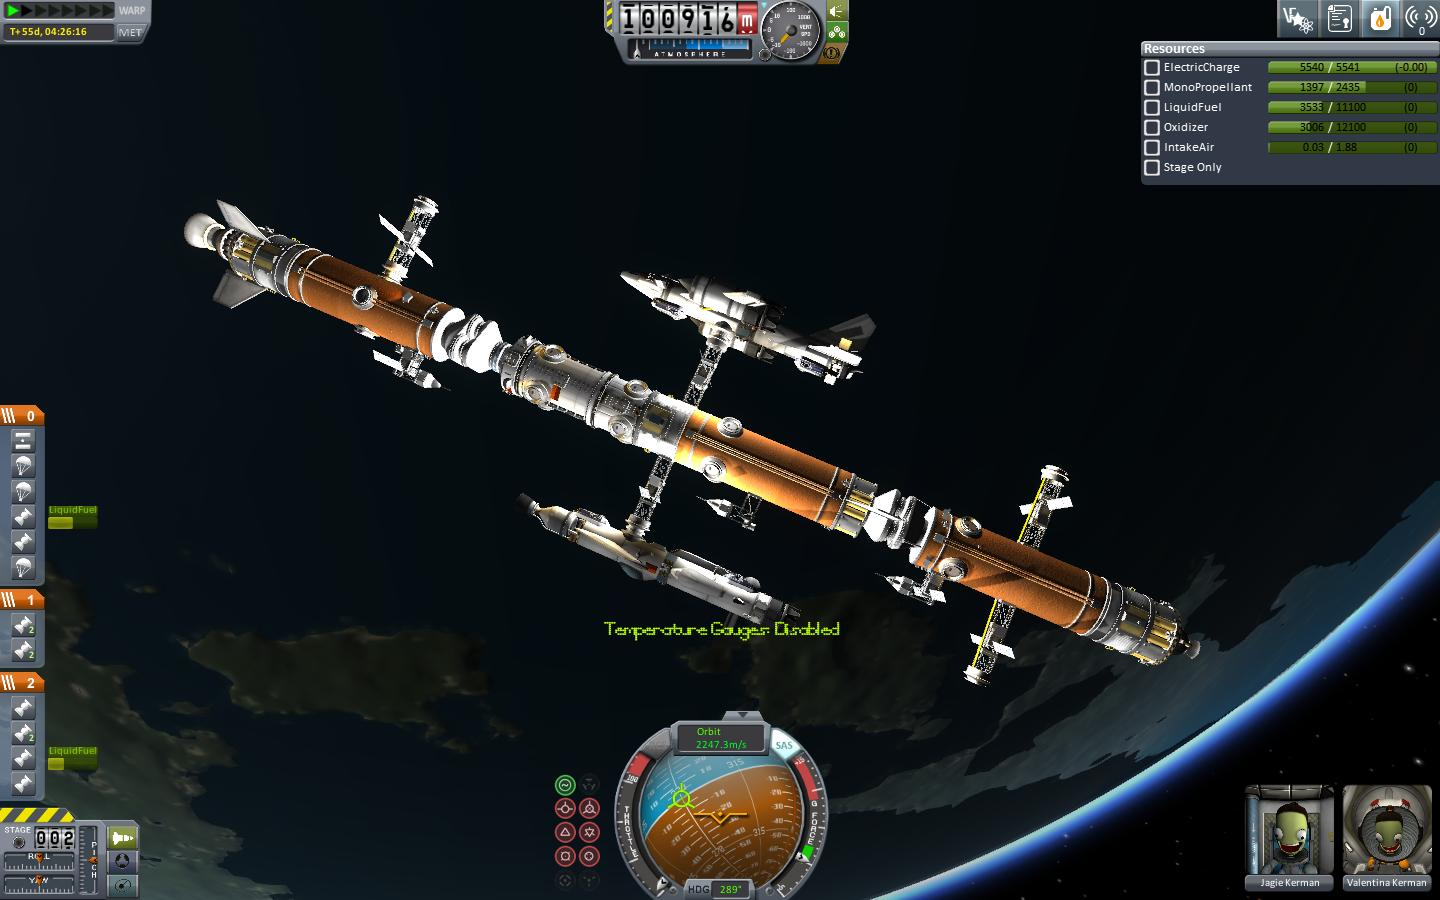 Spaceplane Carrier to Duna (Looking for constructive ...